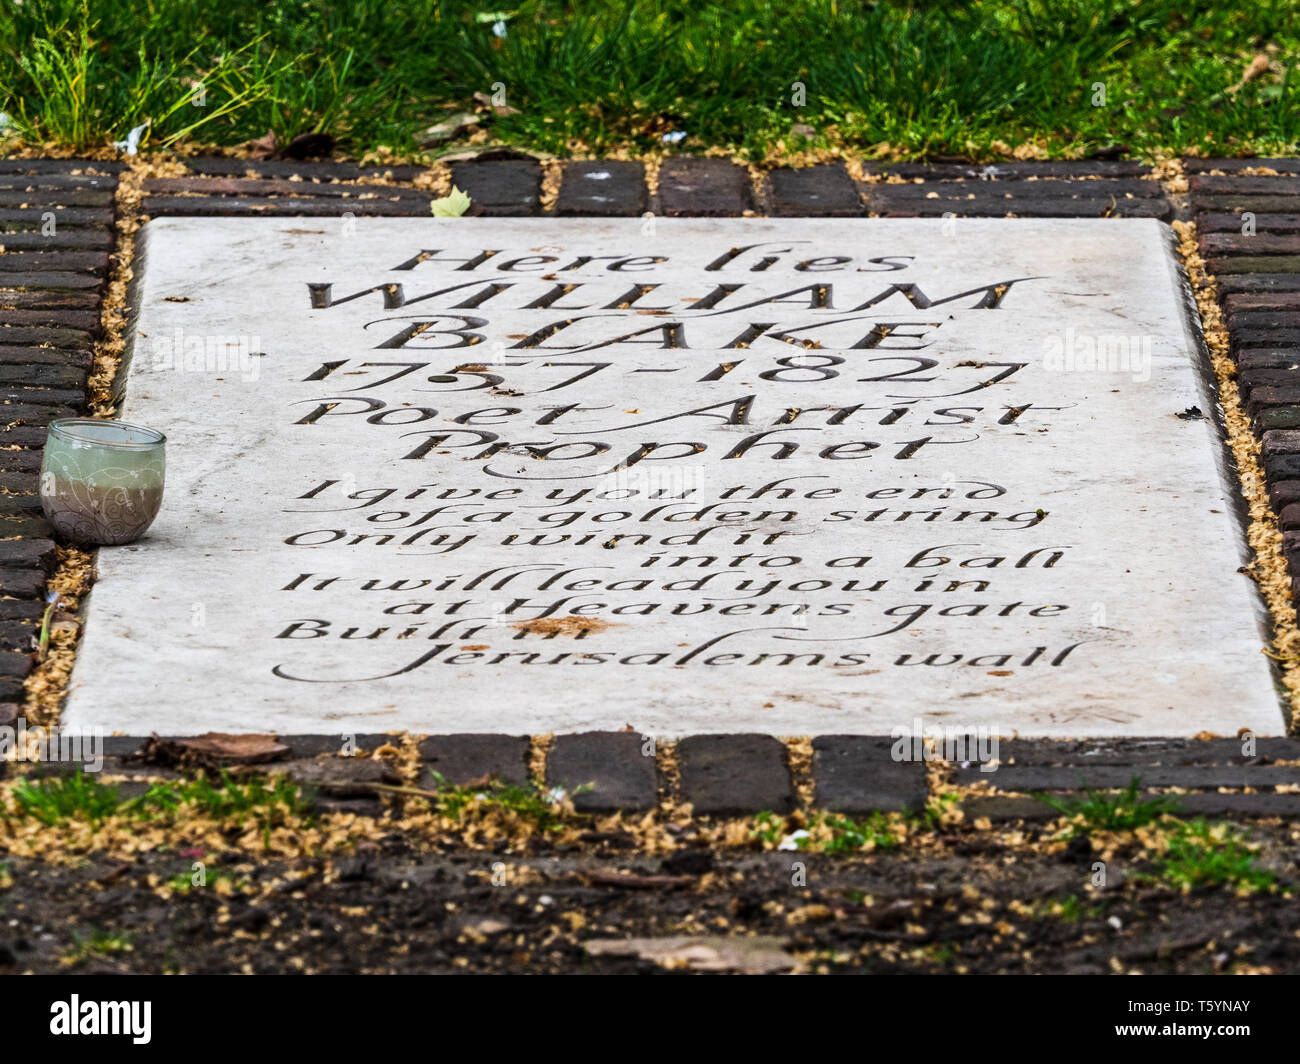 Gravestone marking William Blake's grave in Bunhill Fields Burial Ground London. Stone installed 2018, carved by Lida Cardozo, Jerusalem verse. - Stock Image